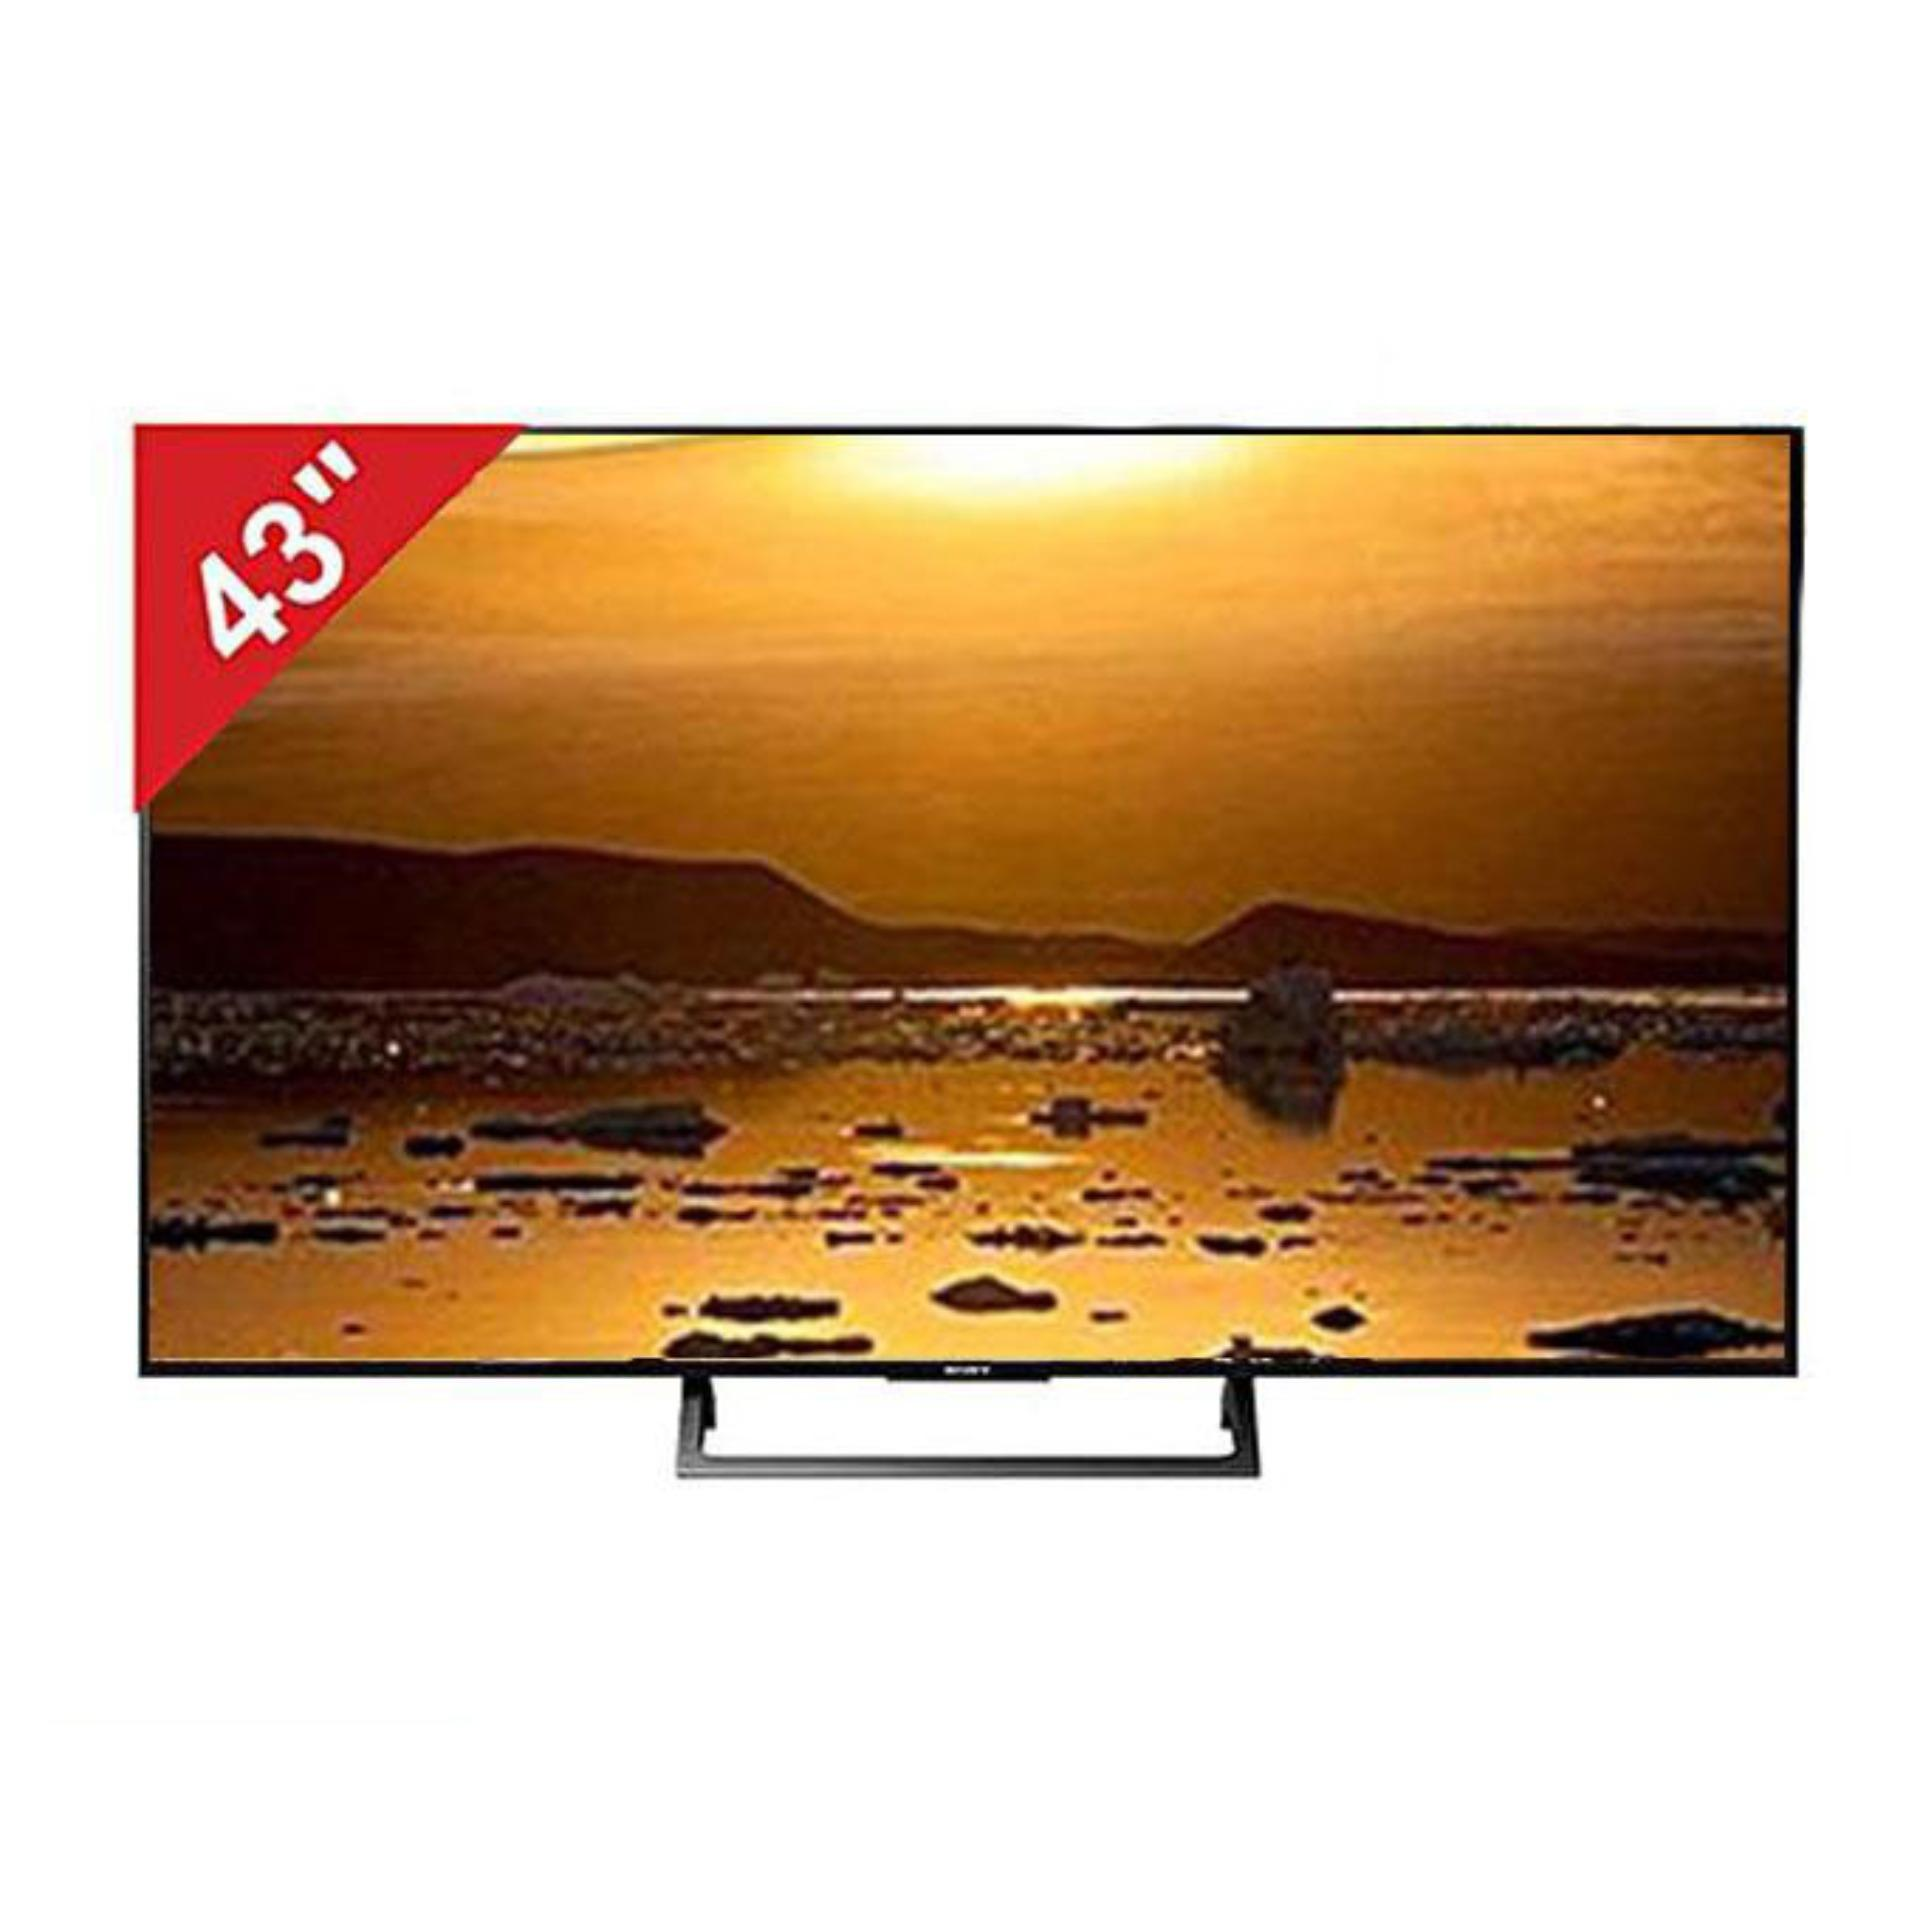 Sony Led Tv In Bangladesh At Best Price Online Darazcombd